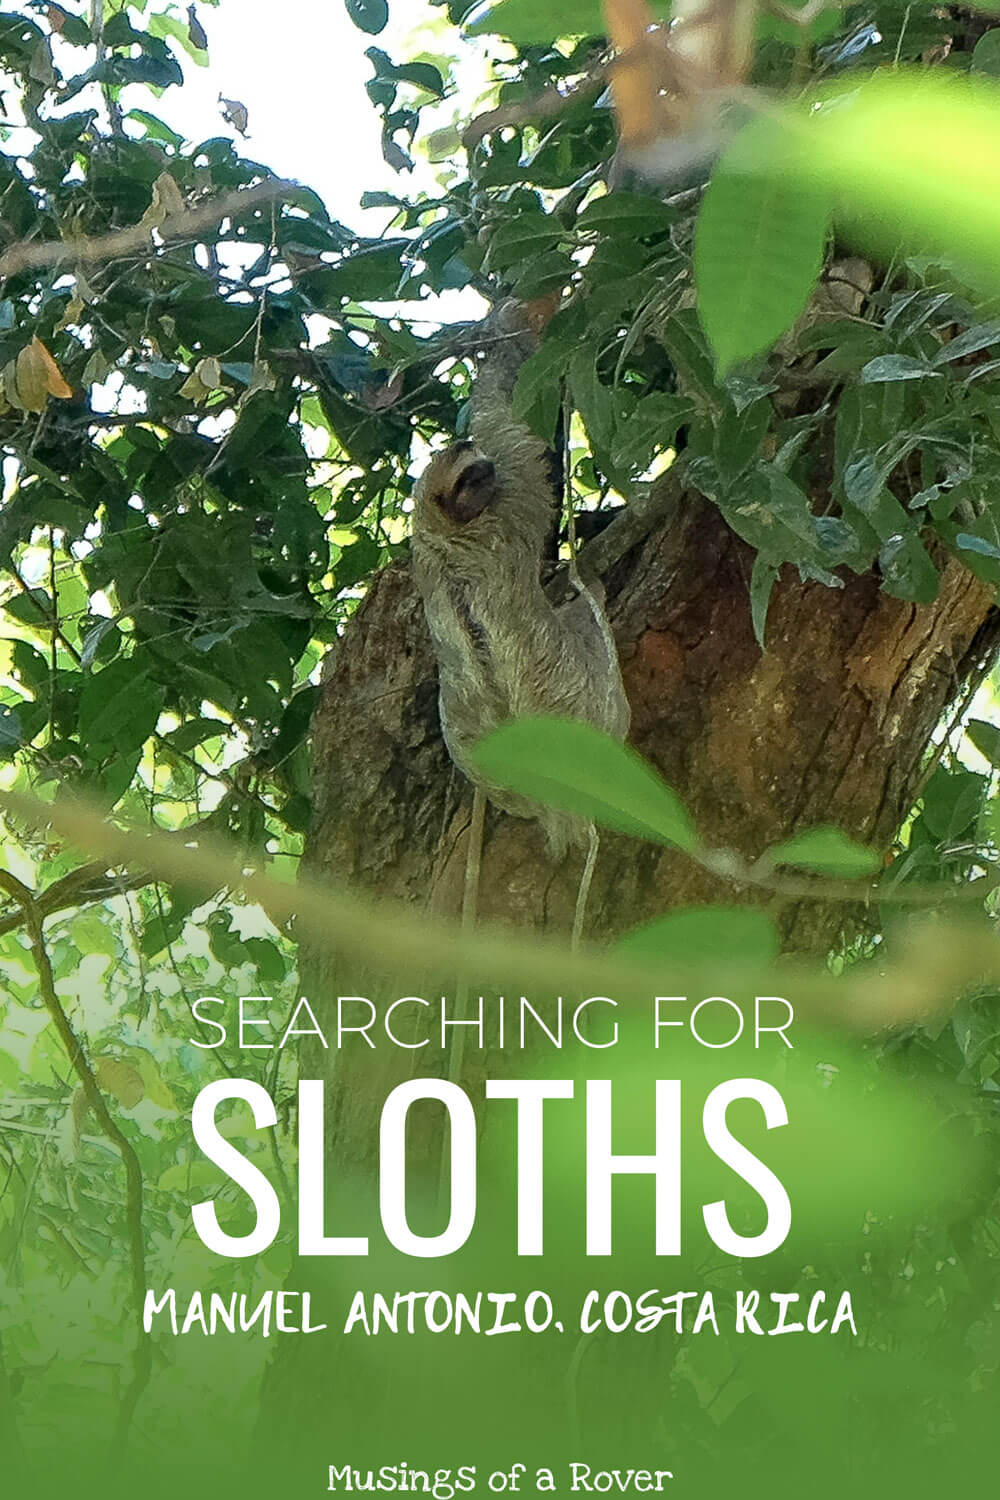 Want to see sloths during your trip to Costa Rica? Considering going to Manuel Antonio National Park if you haven't had any luck. You could see sloths, capuchin monkeys, squirrel monkeys, and more!